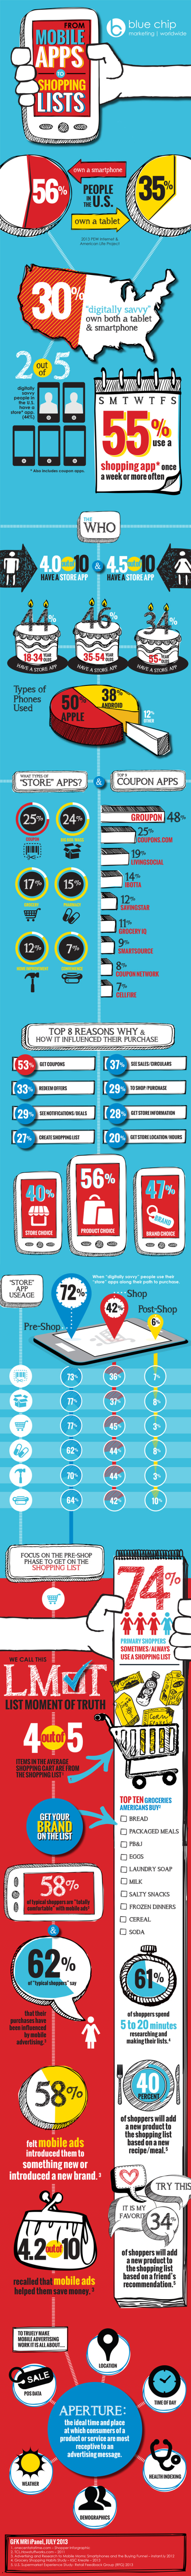 INFOGRAPHIC: HOLIDAY GUIDE TO MOBILE MARKETING